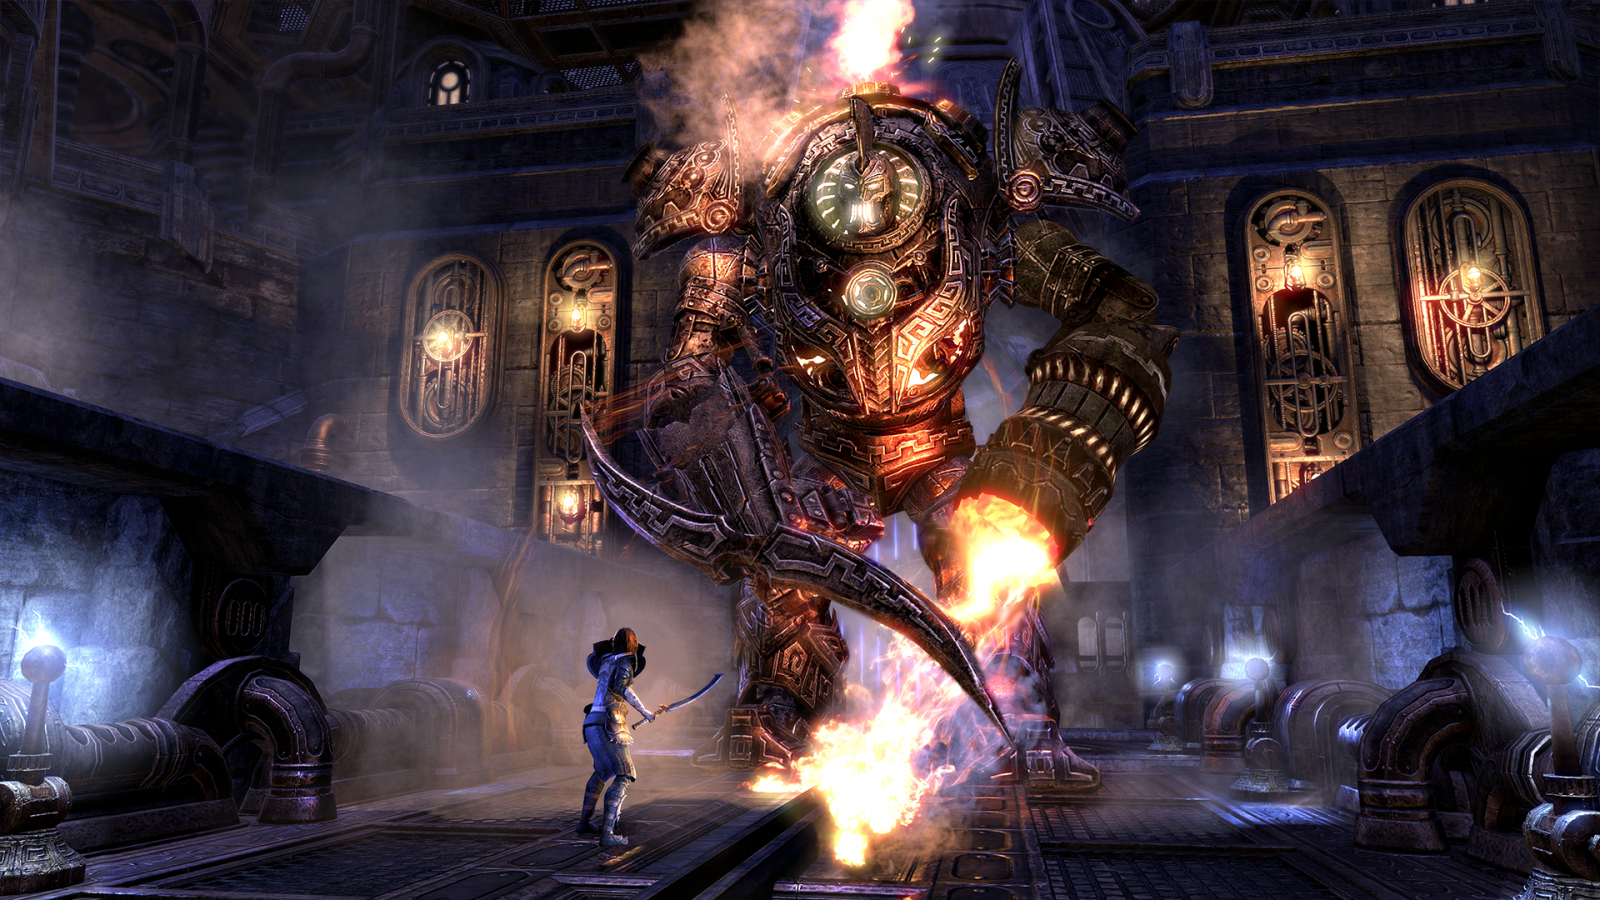 ESO Trial, Halls of Fabrication, Completed!